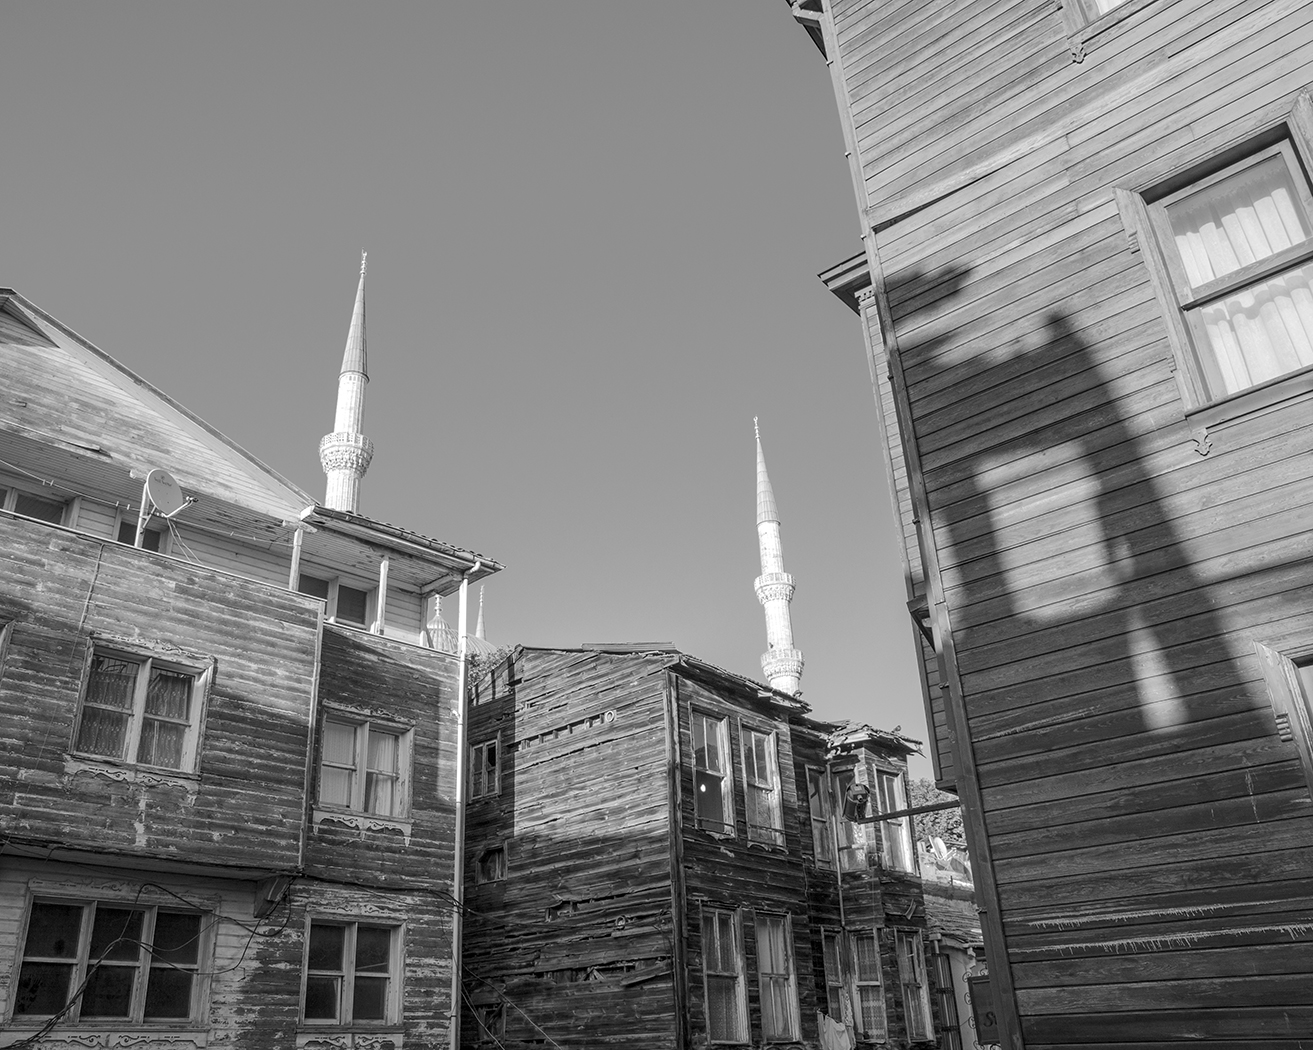 Alleys and Minarets in Istanbul